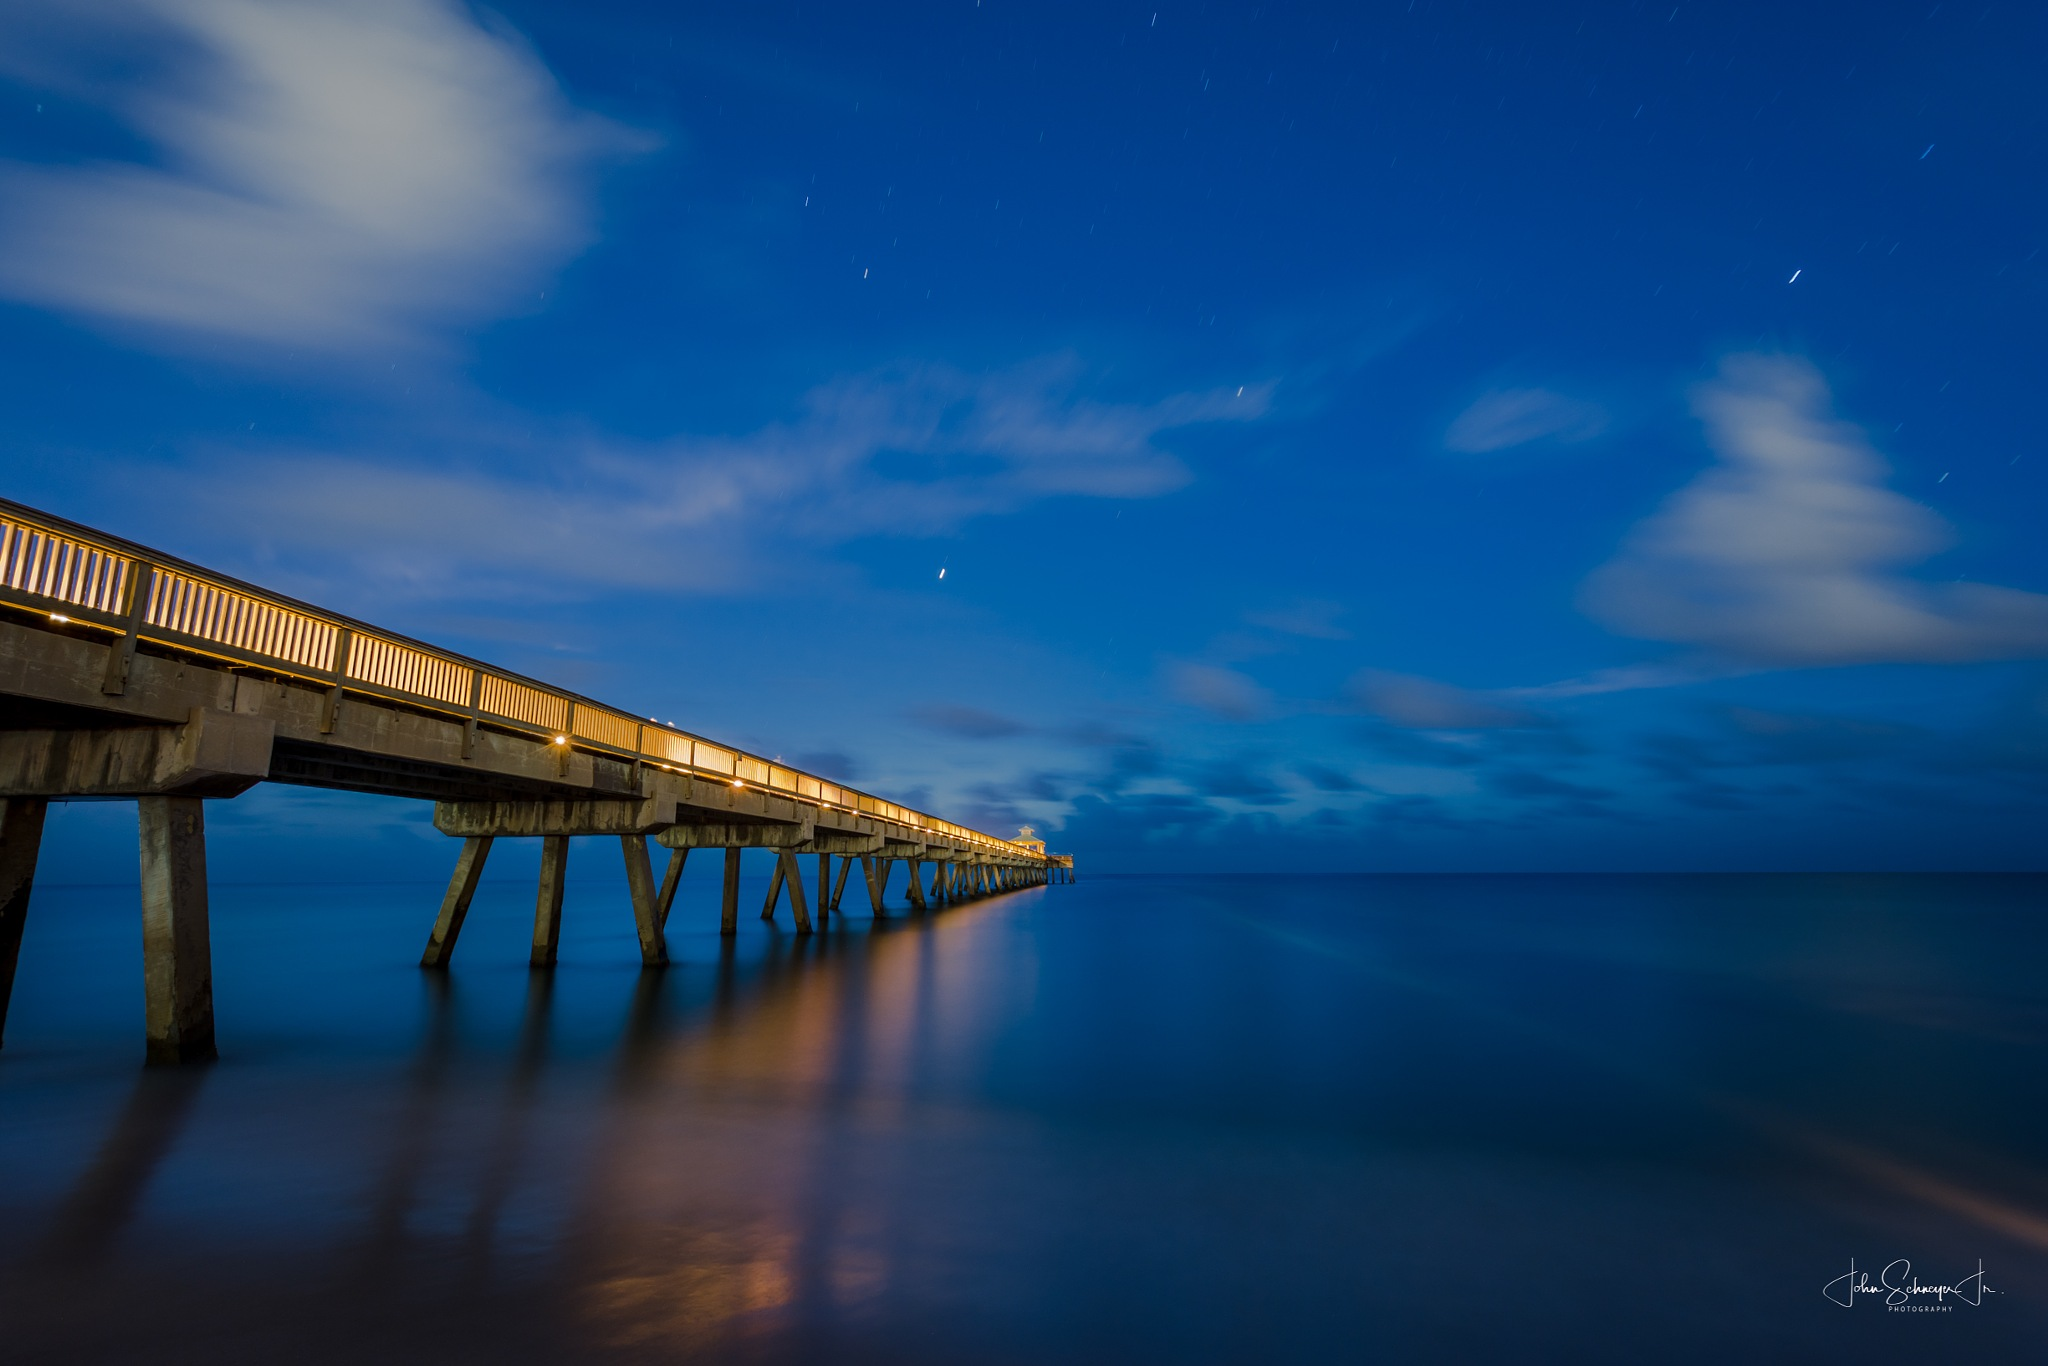 Into the Blue by John Schneyer